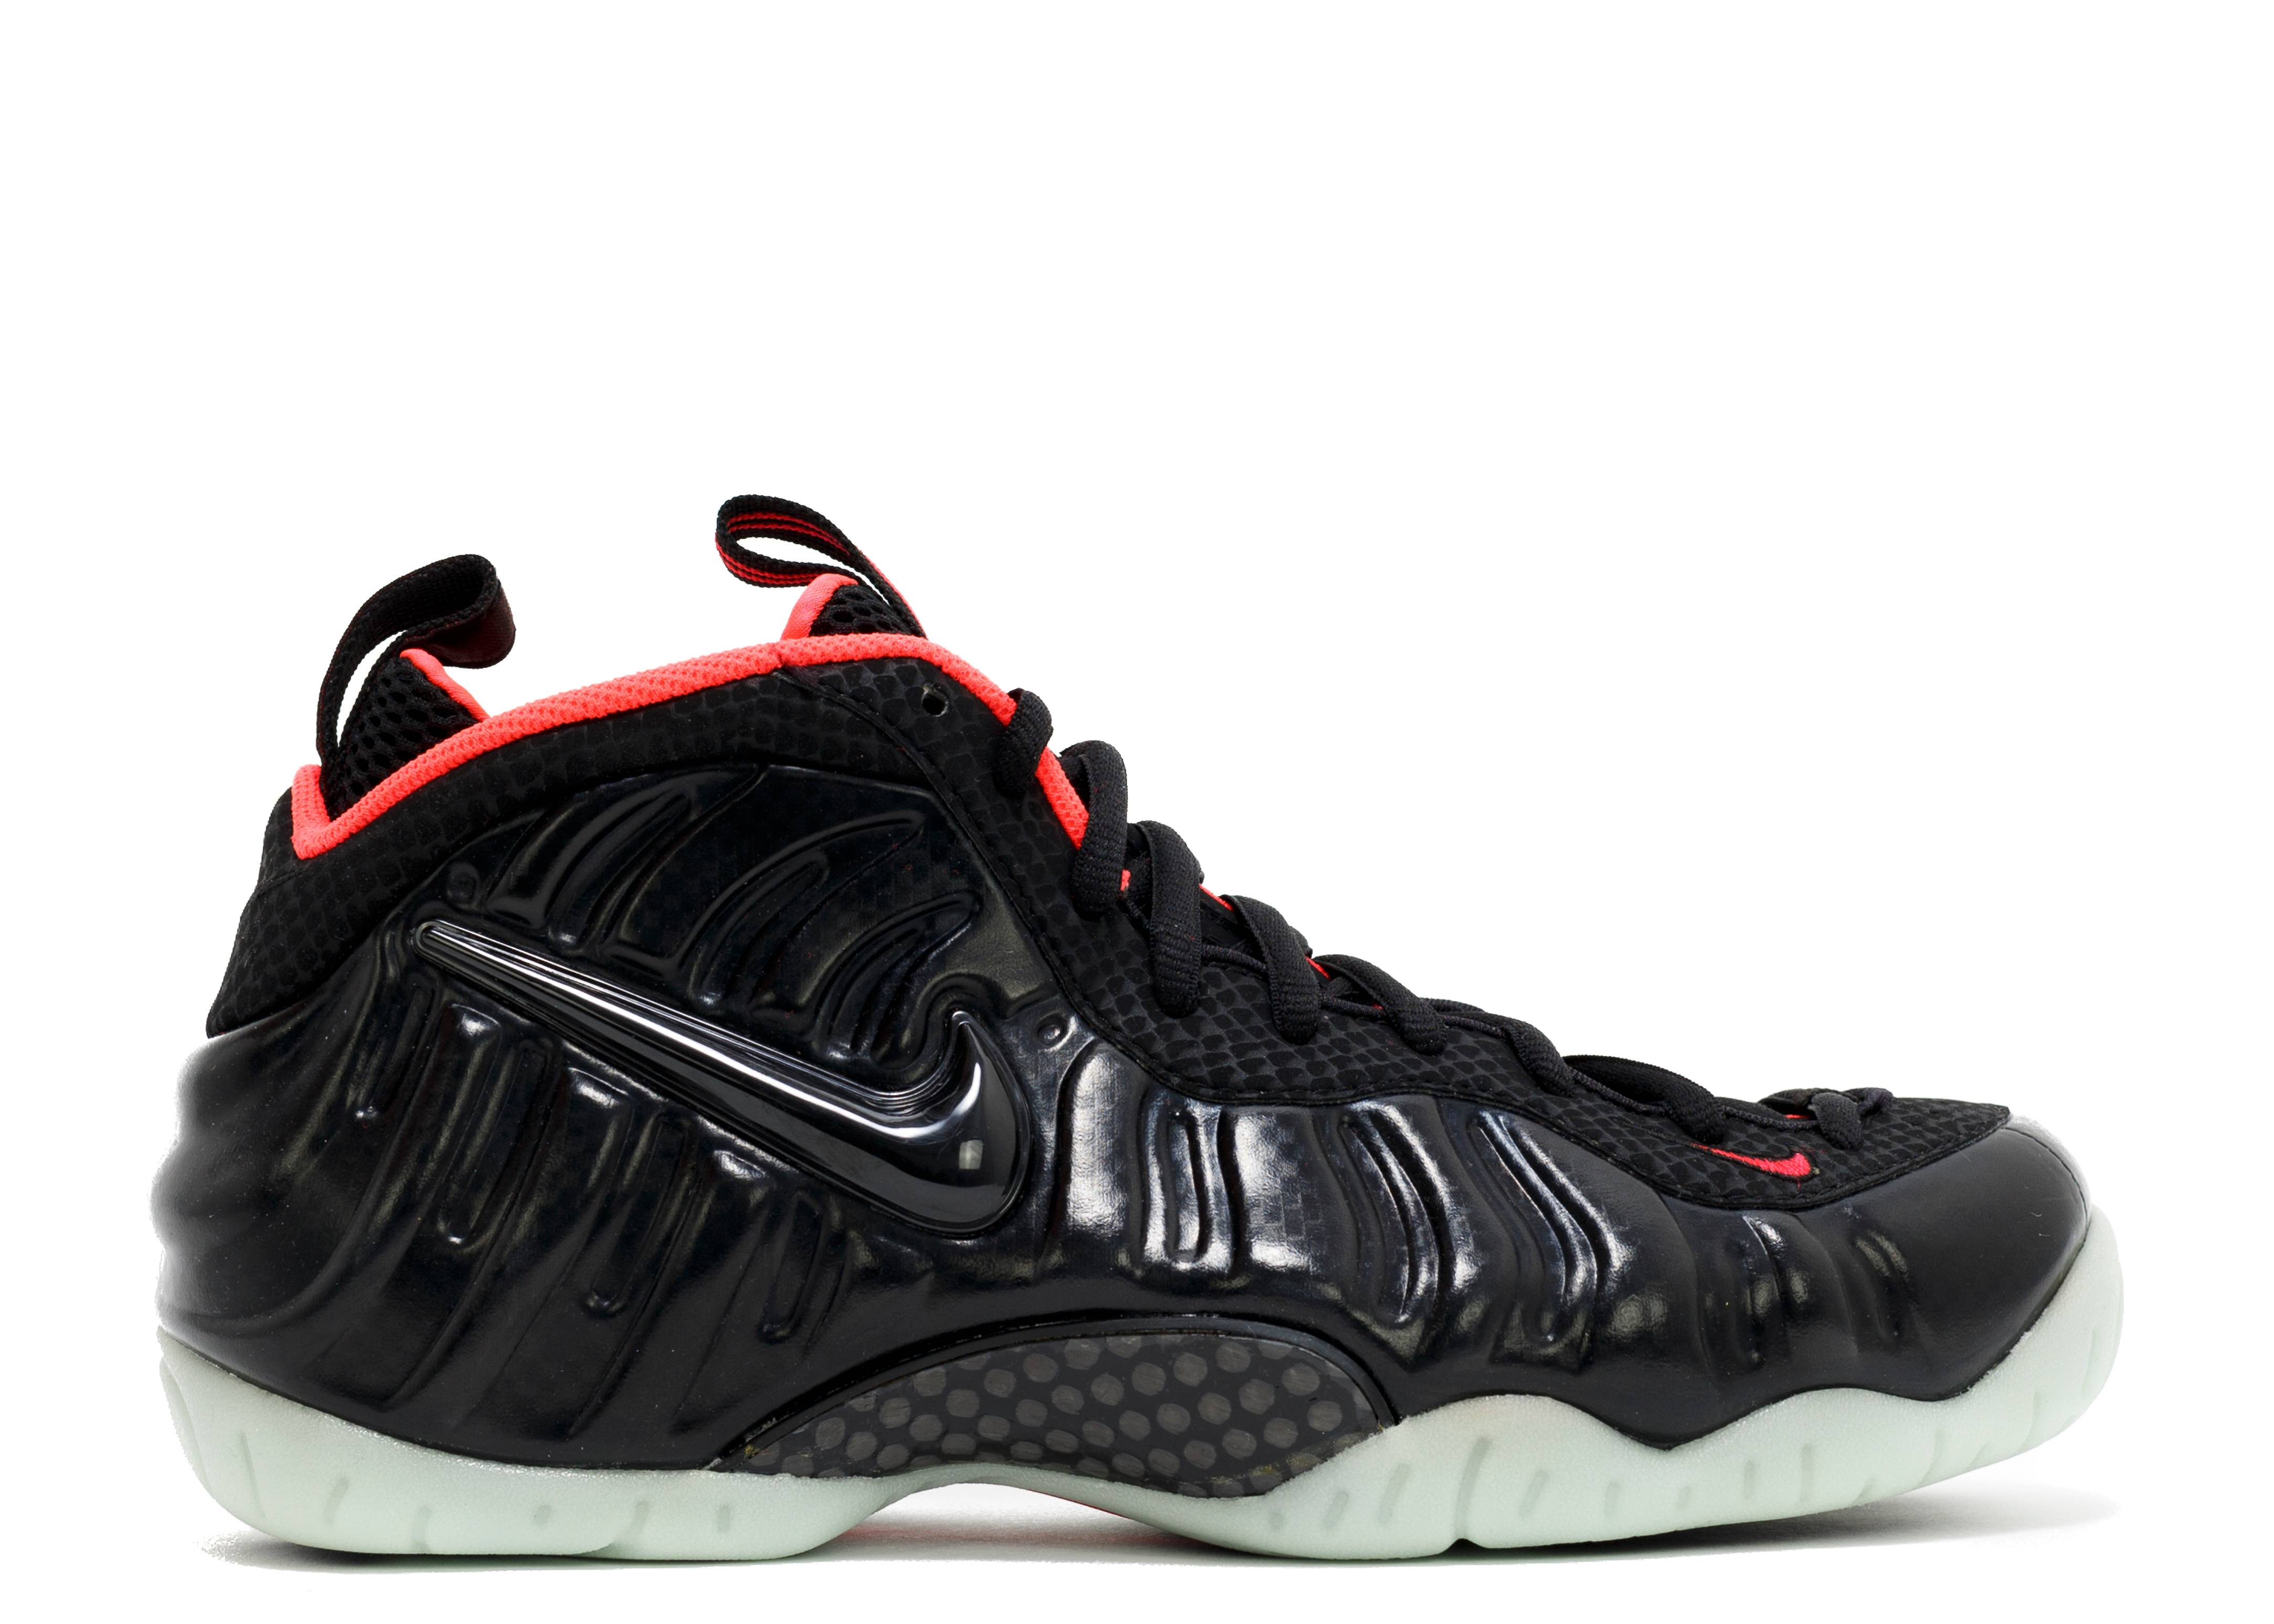 Detailed Images Of The Nike Air Foamposite Pro University Red